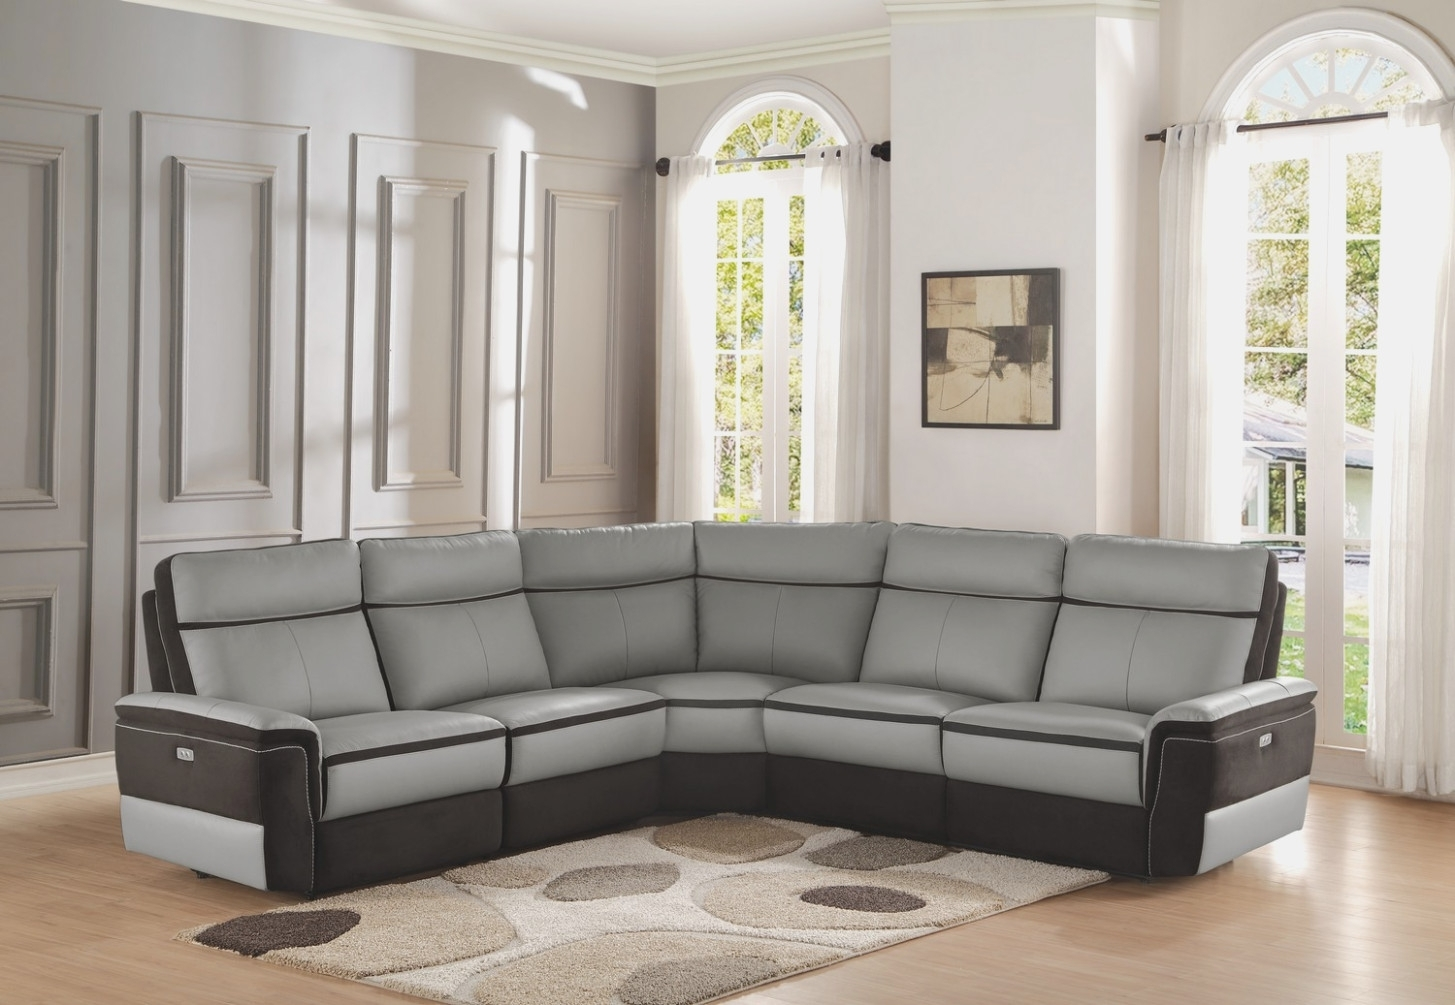 Learn All About Fabric Sectional | Interior Design Information inside Denali Light Grey 6 Piece Reclining Sectionals With 2 Power Headrests (Image 17 of 30)